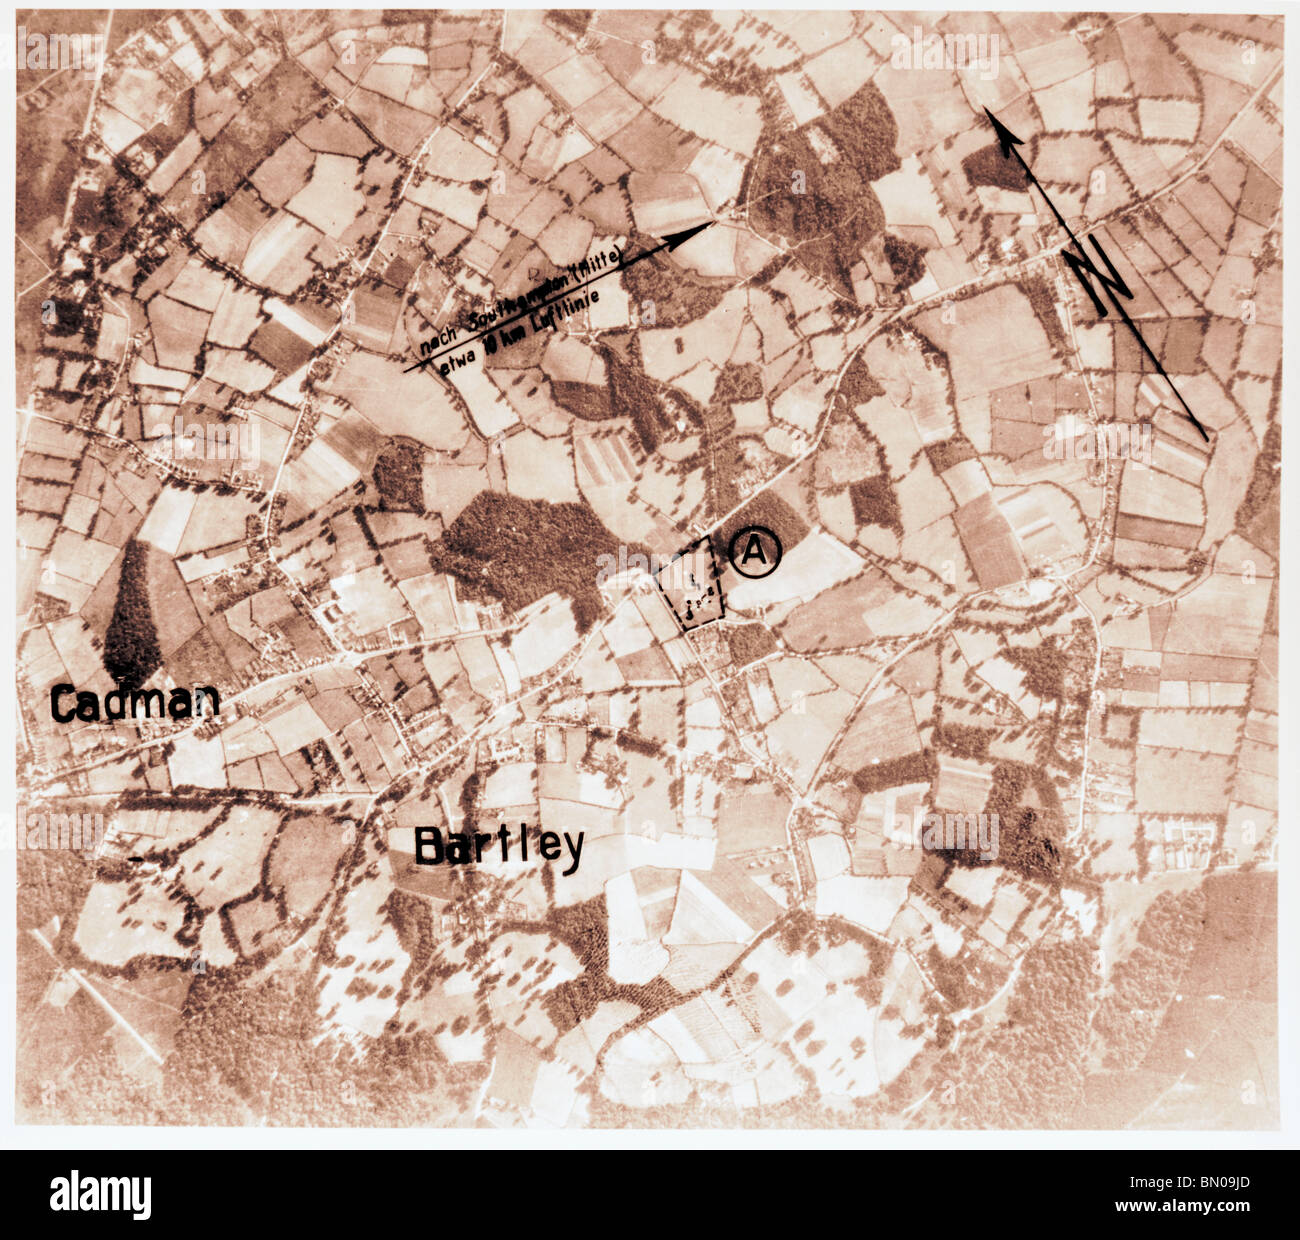 Cadnam & Bartley - Hampshire 1940 Wireless Station Luftwaffe Aerial Image - Stock Image